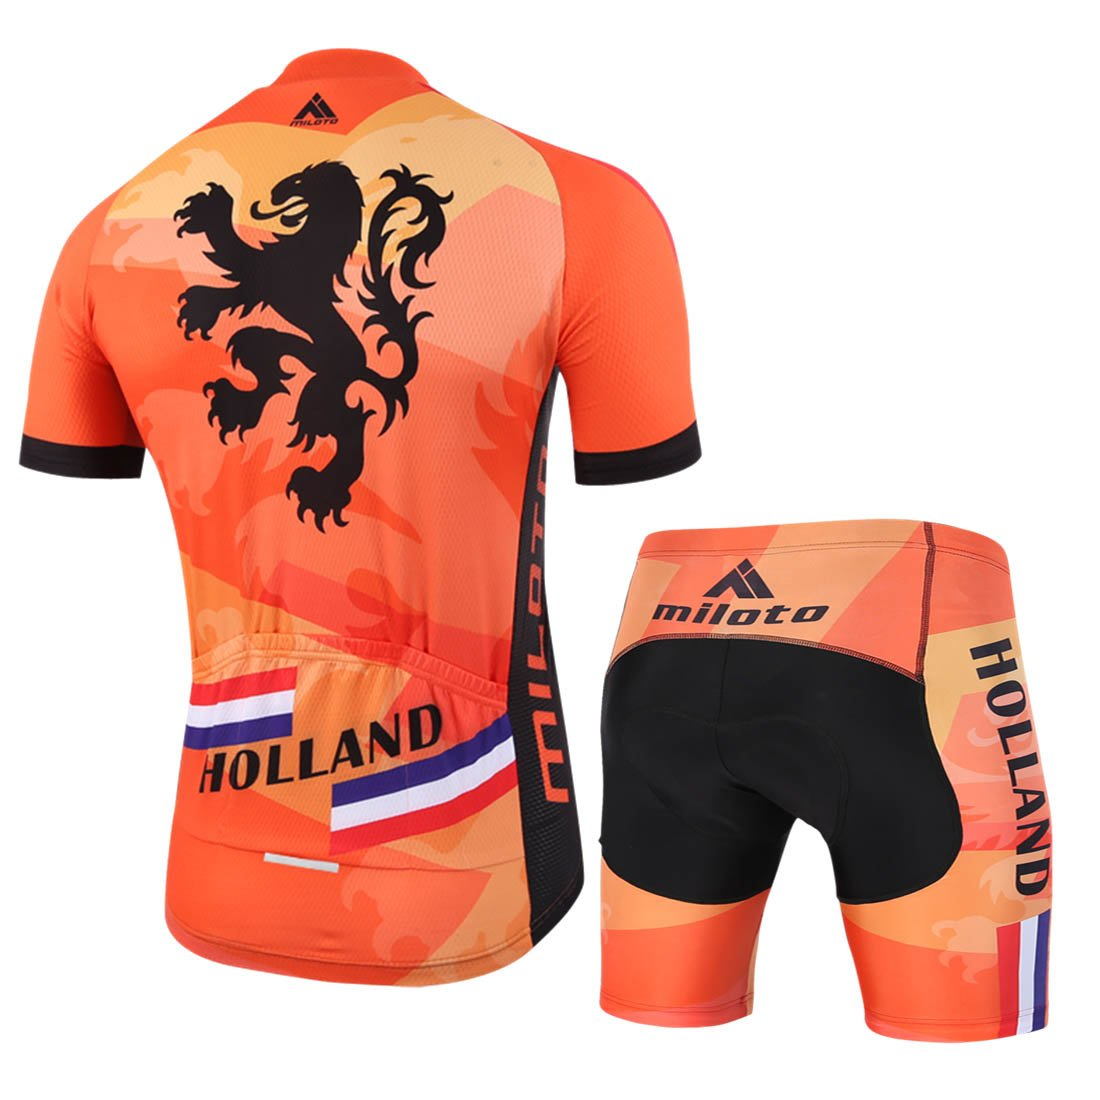 BIYINGEE Mens Cycling Jersey Shorts Sets Short Sleeve with Reflective Stripe